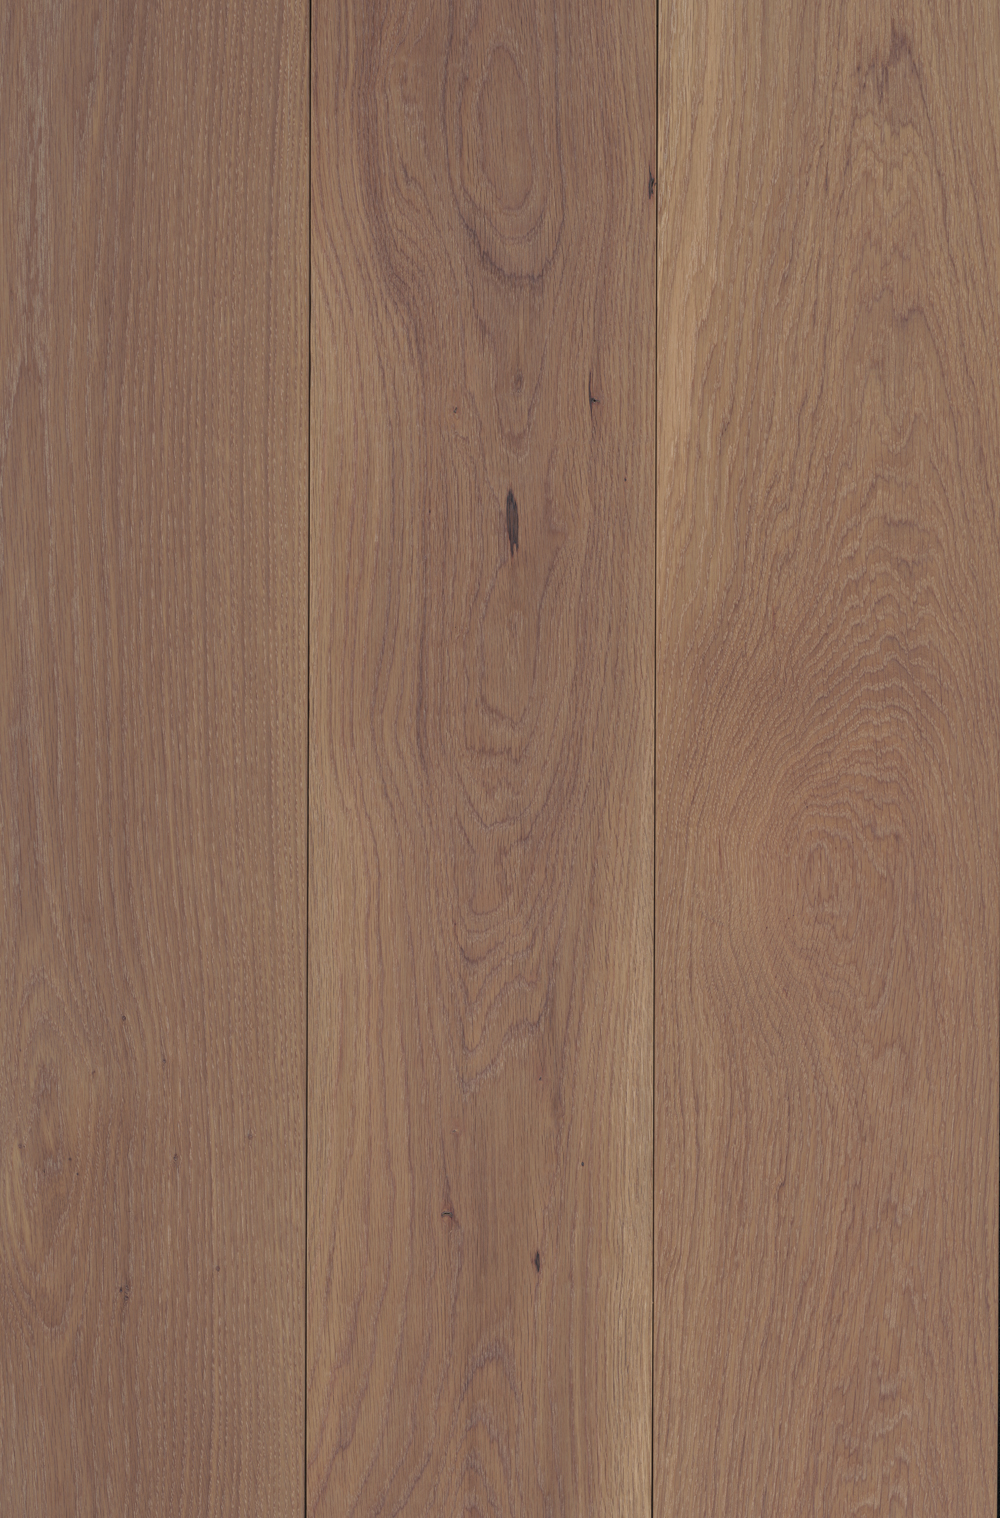 Select Harvest White Oak Hardwood Flooring [Cascade Finish]